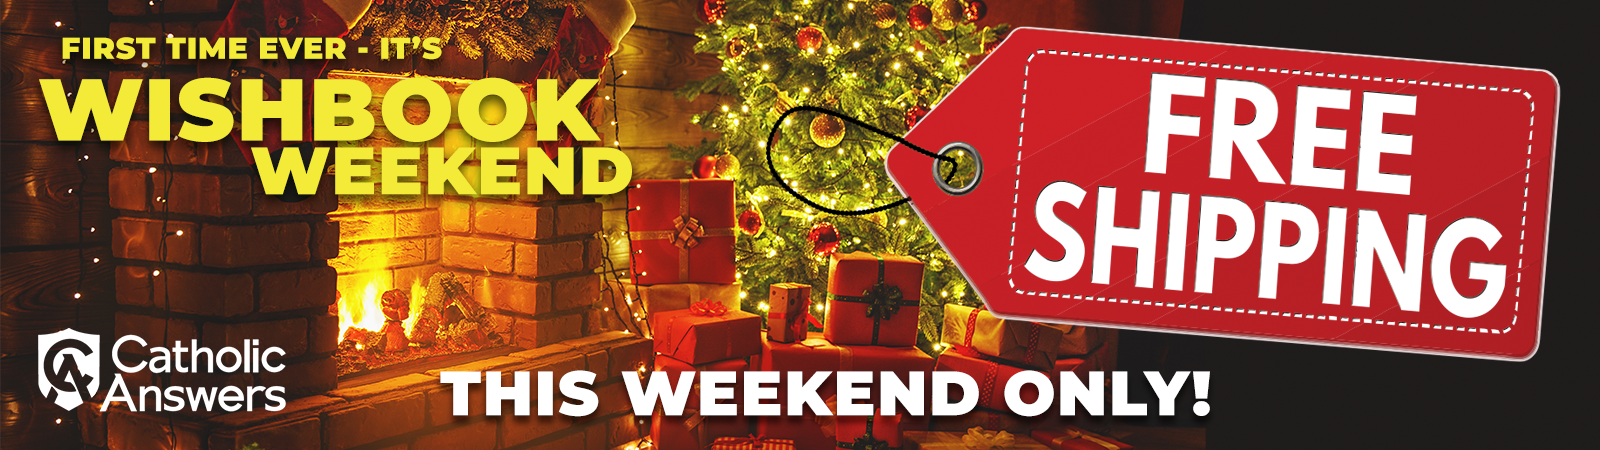 wishbook-weekend-1600x450.png